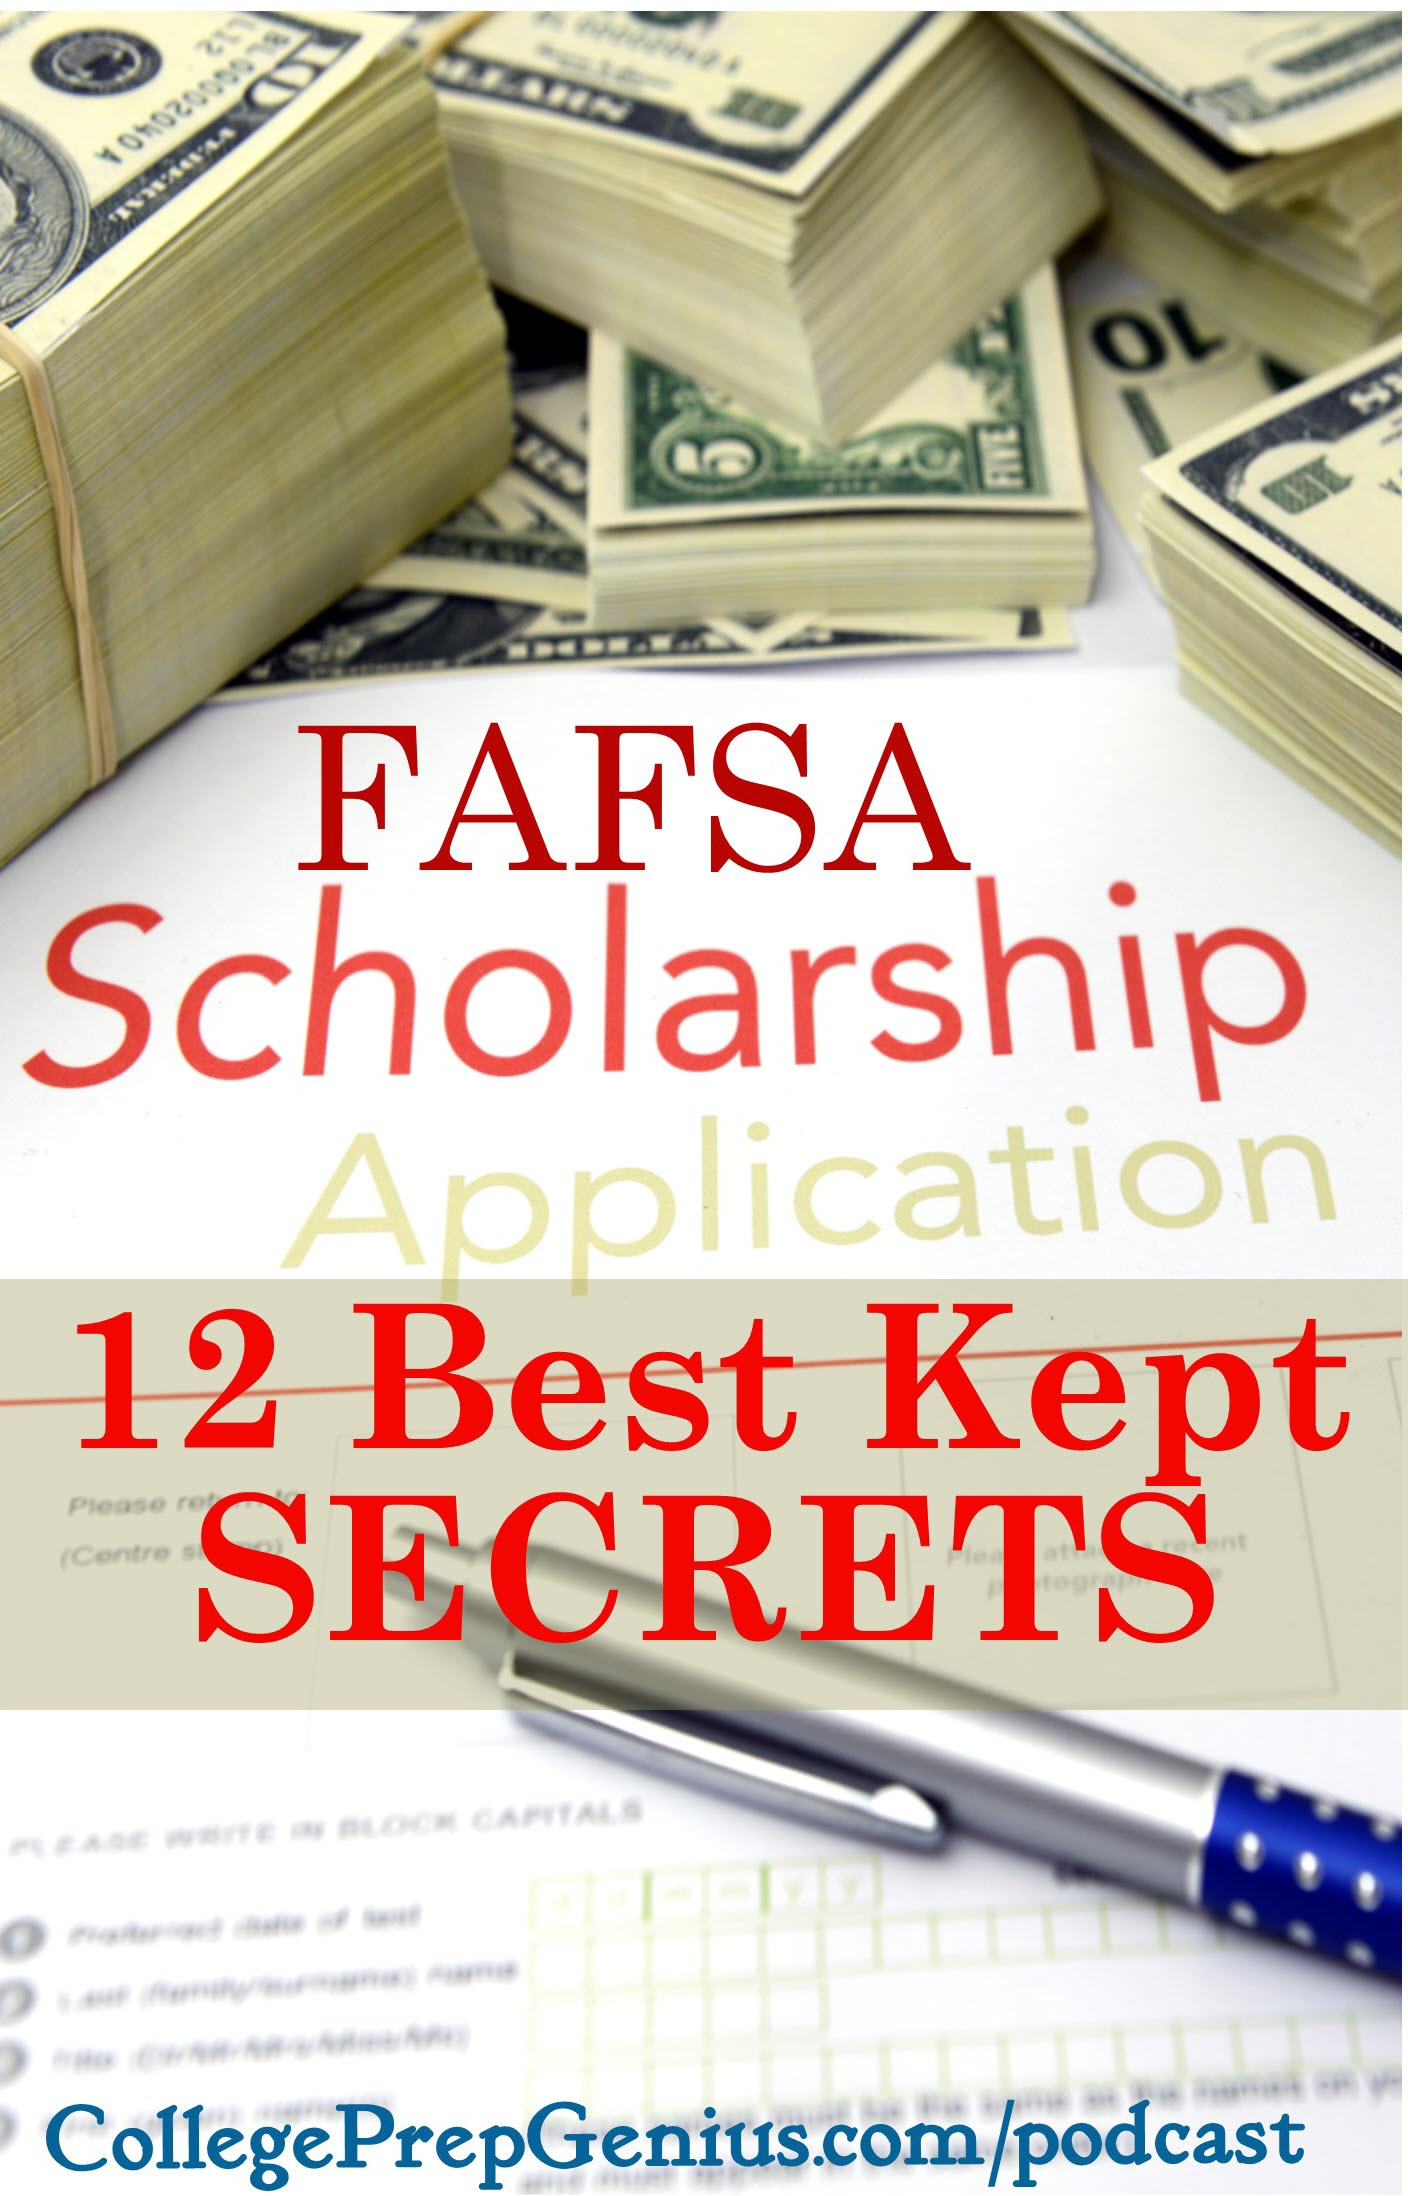 FAFSA 12 Best kept secrets